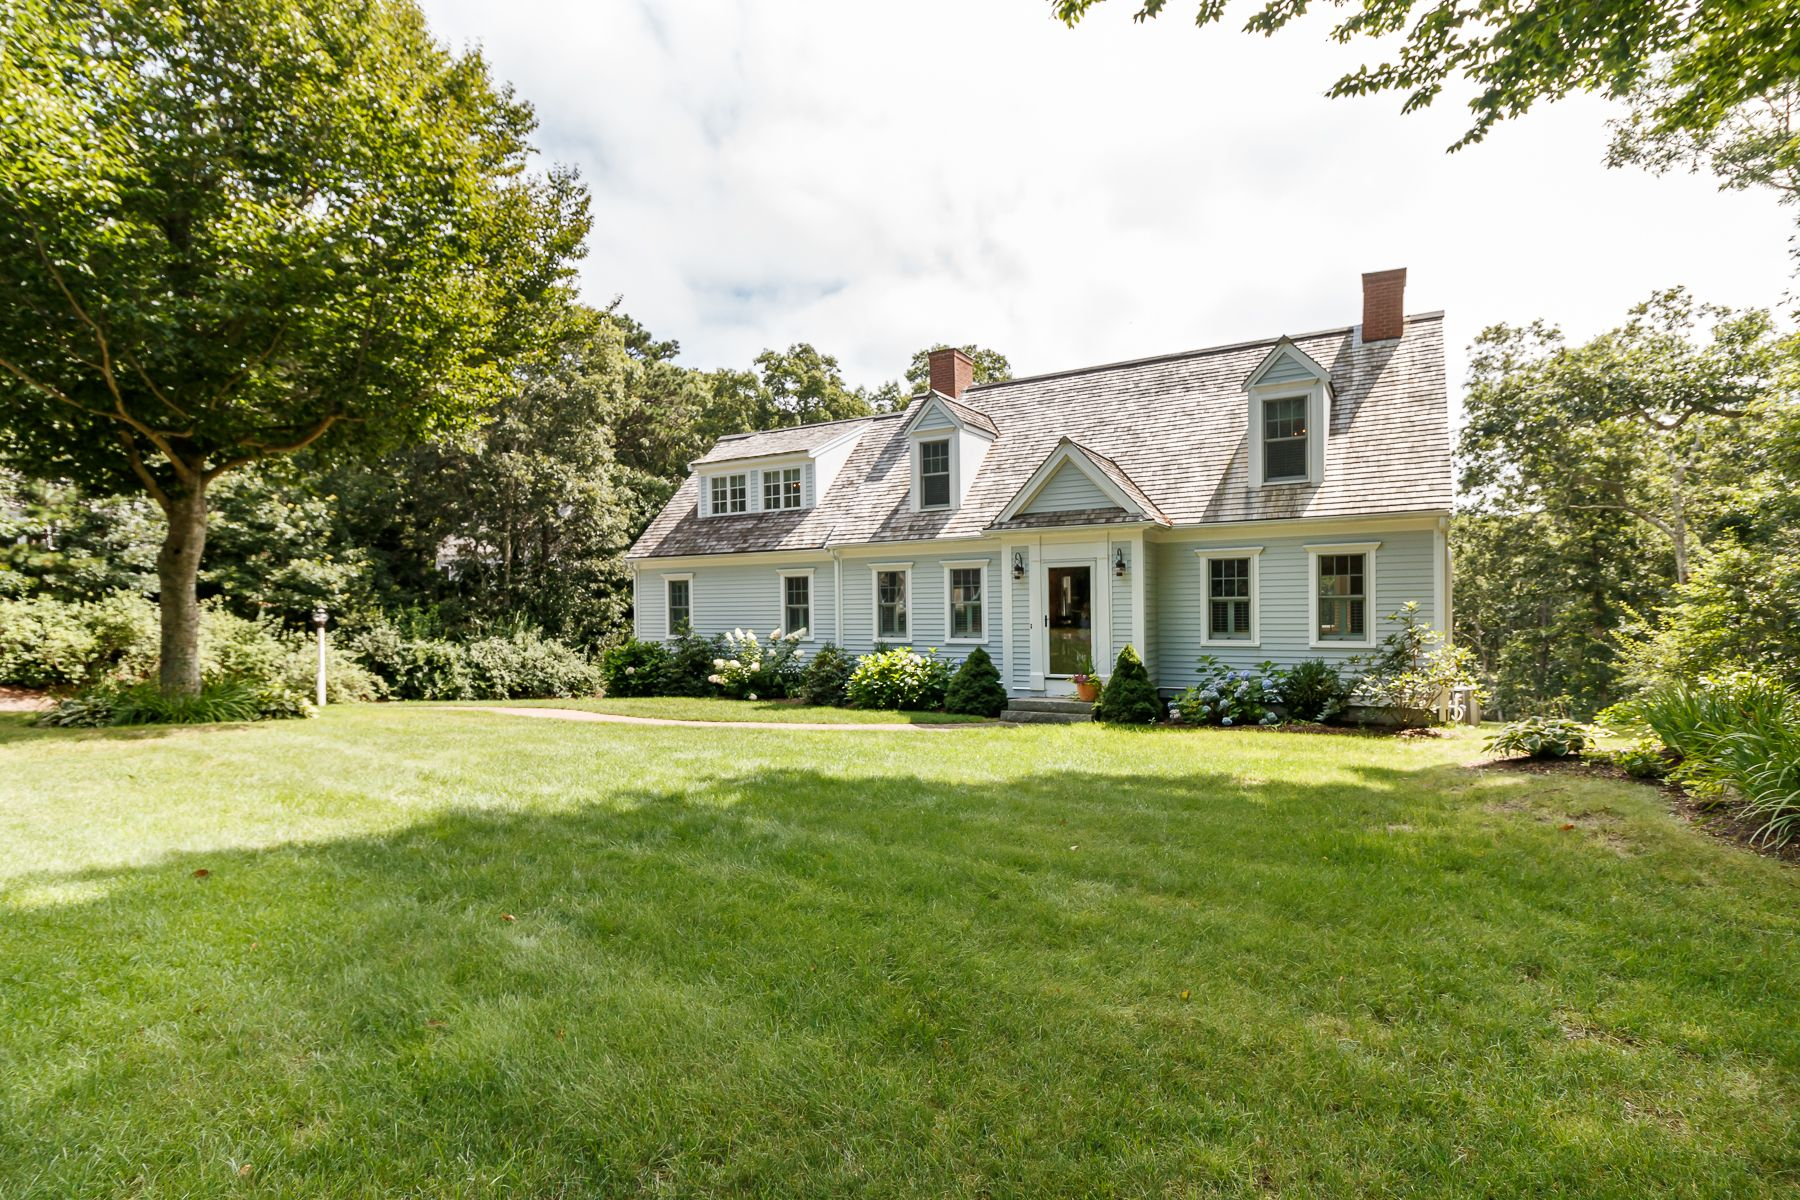 Single Family Homes for Sale at 14 Fairfield Drive East Sandwich, Massachusetts 02537 United States